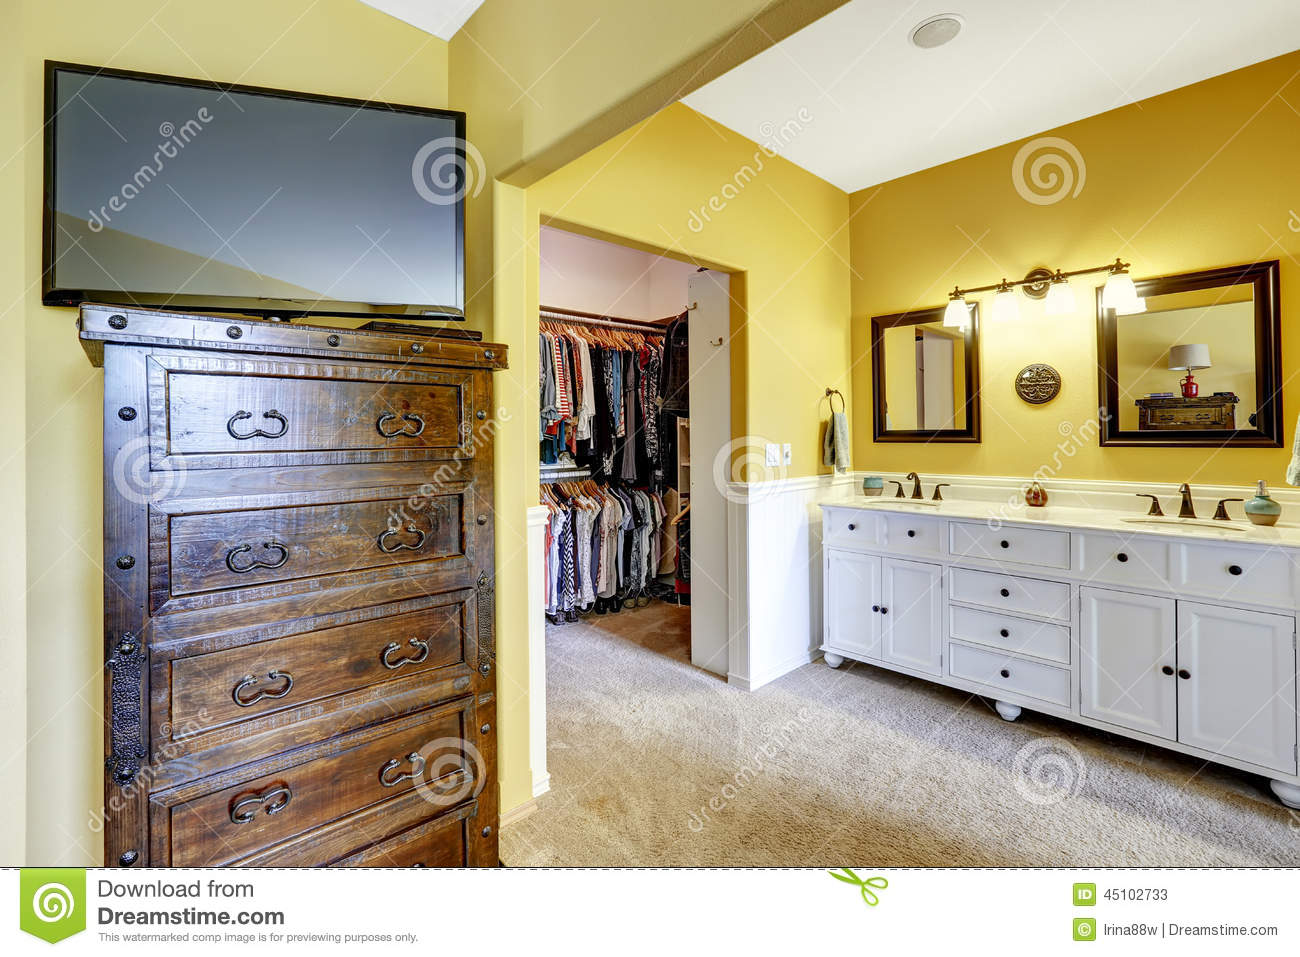 Bright Yellow Room With White Vanity Cabinet, Wooden Dresser With Tv And  Walk In Closet